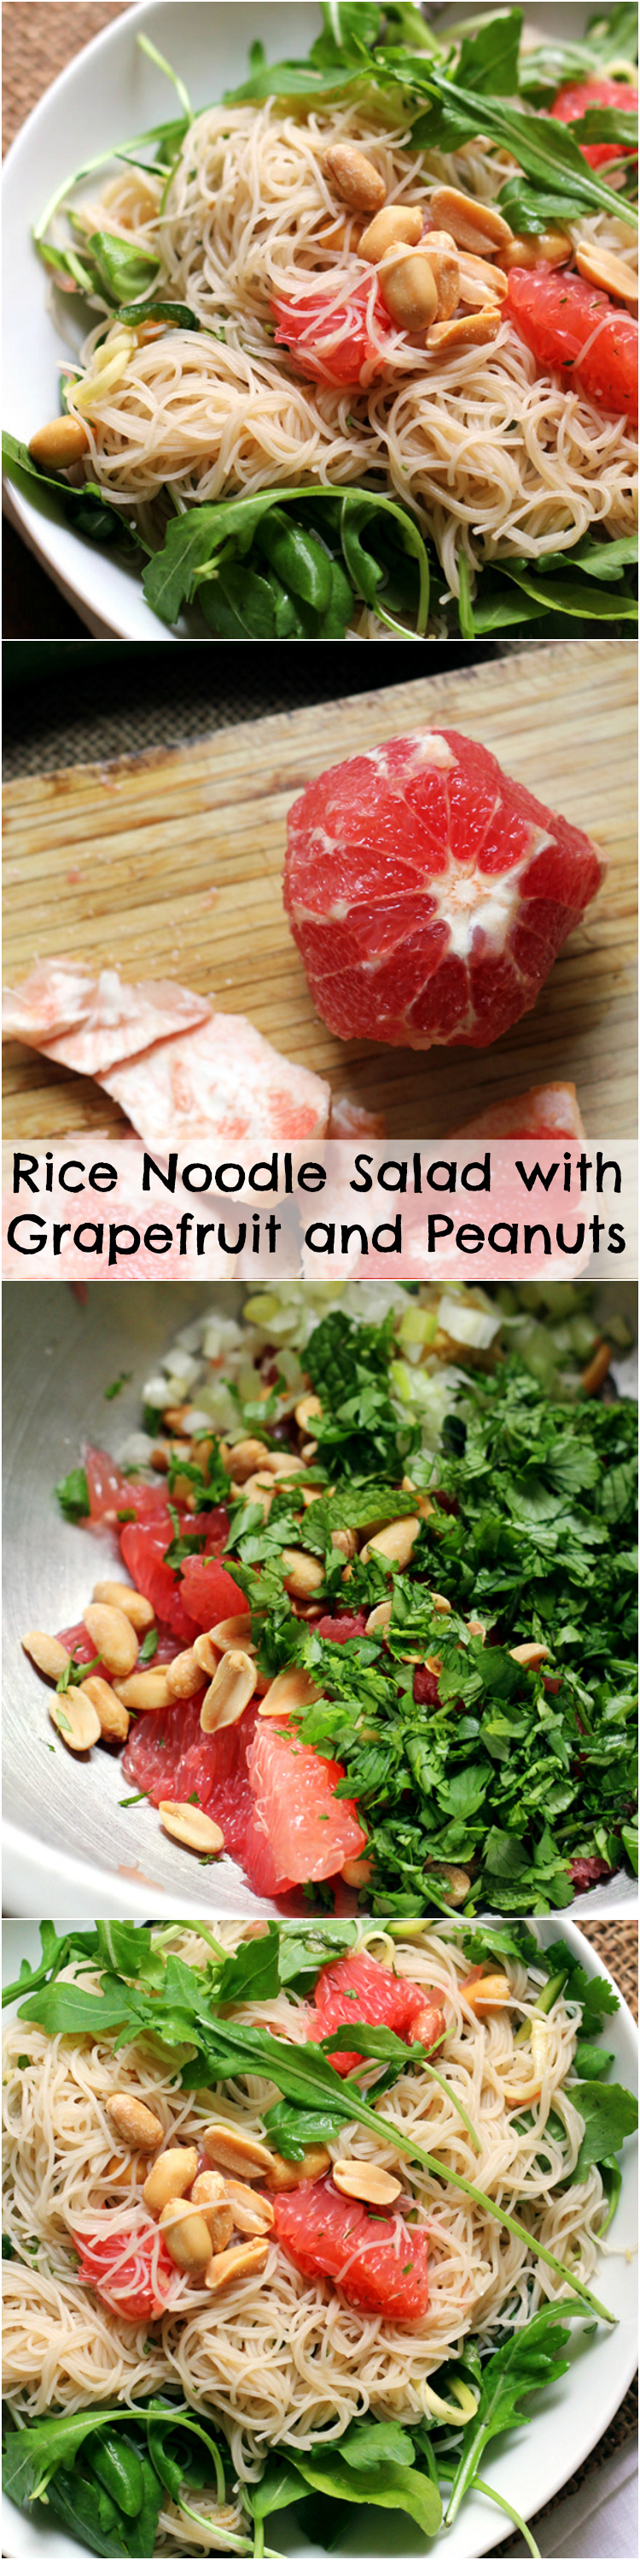 rice noodle salad with grapefruit and peanuts